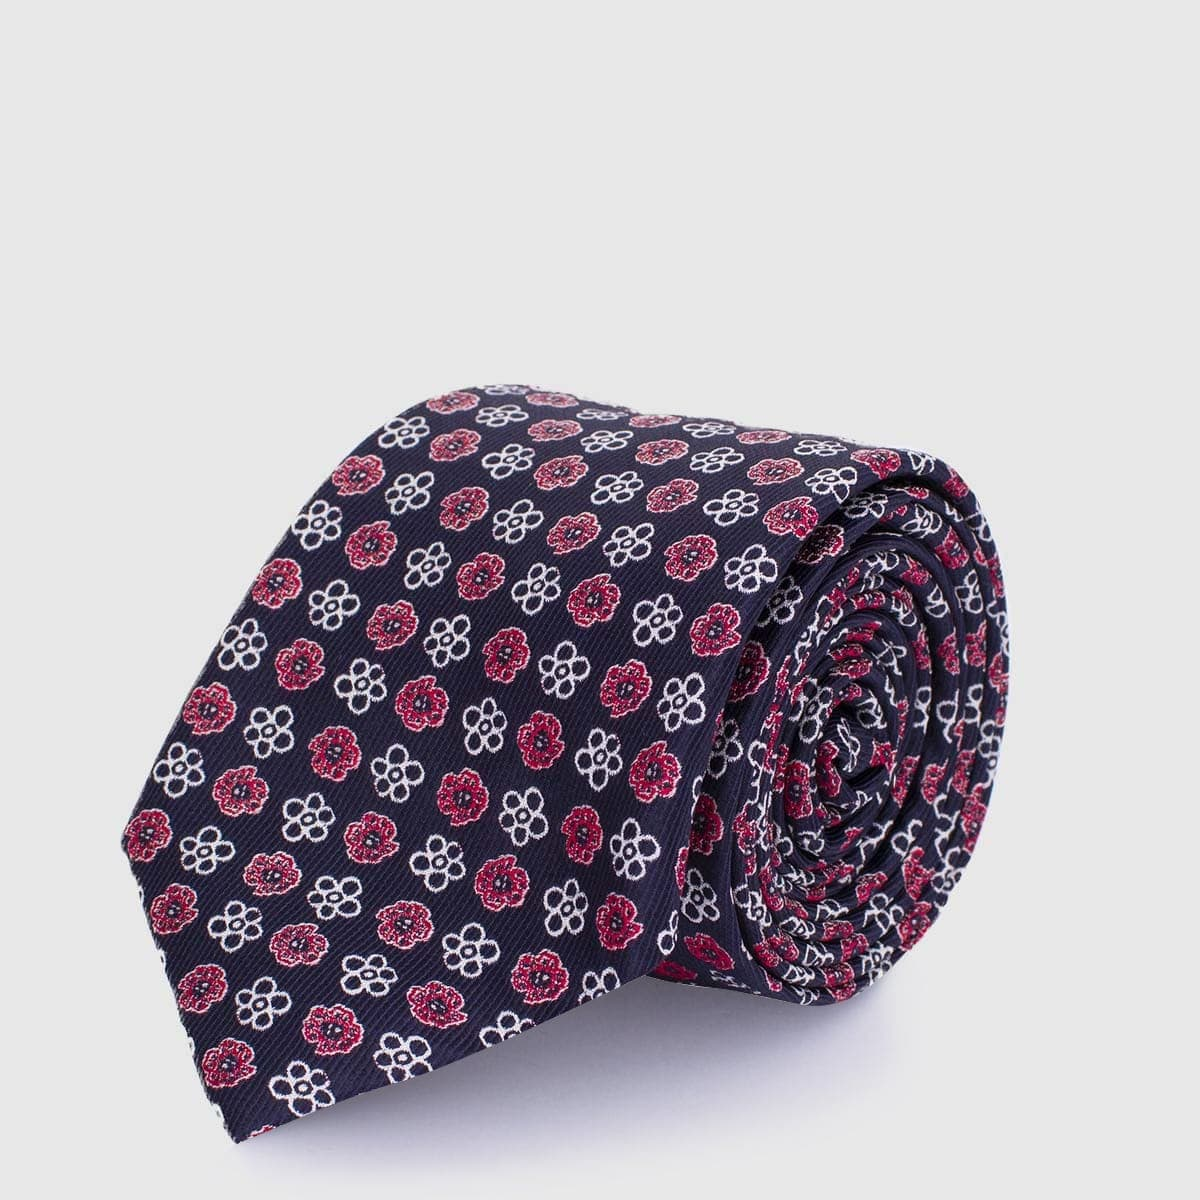 5 Fold black tie with red and white flowers